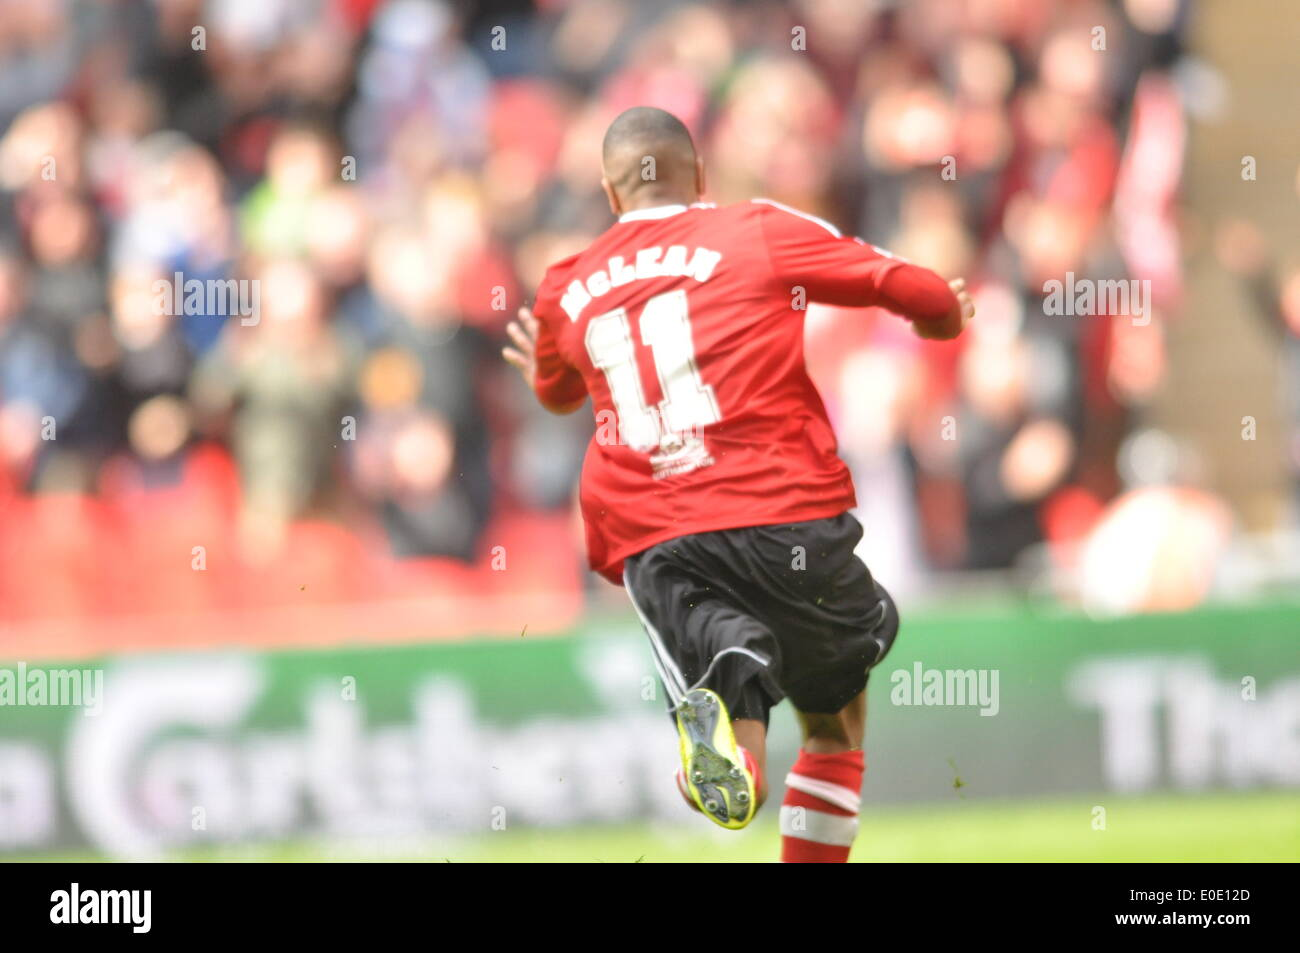 Wembley london uk 10th may 2014 marvin mcclean of sholing fc marvin mcclean of sholing fc scores the only goal of the fa vase 2014 final sholing town fc are based in hampshire and are this years floridaeventfo Image collections